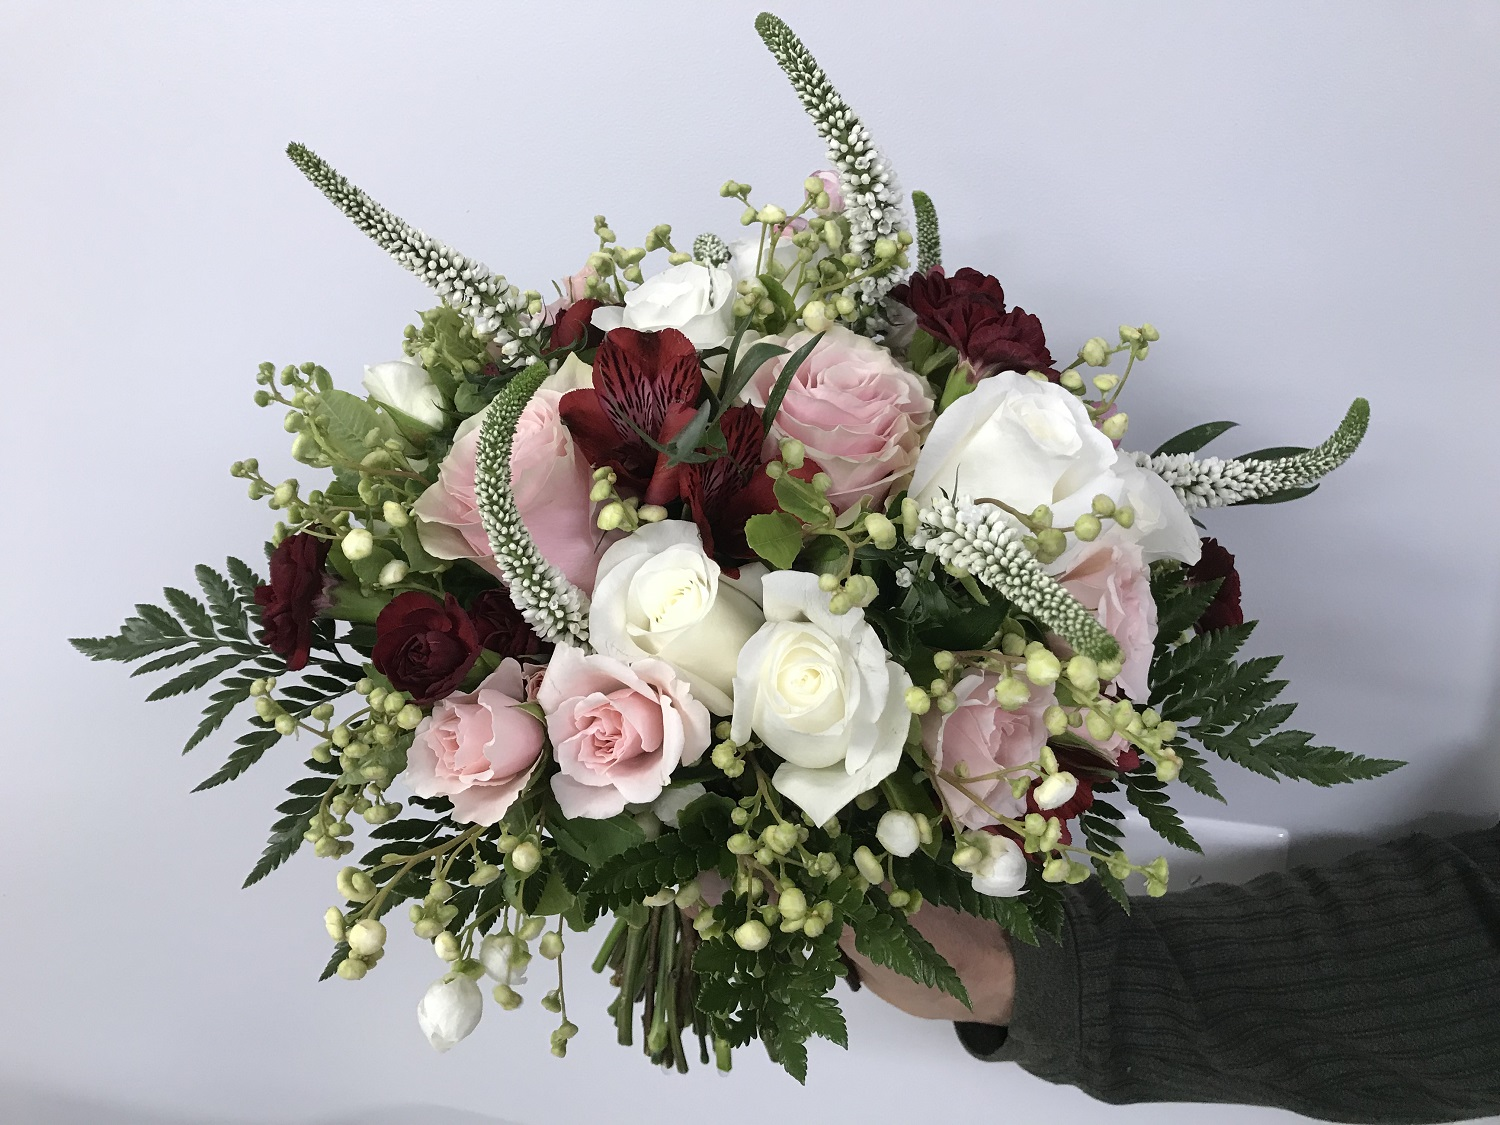 Sarah's bouquet—roses, carnation, fern, mock orange, lysimachia, alstroemeria